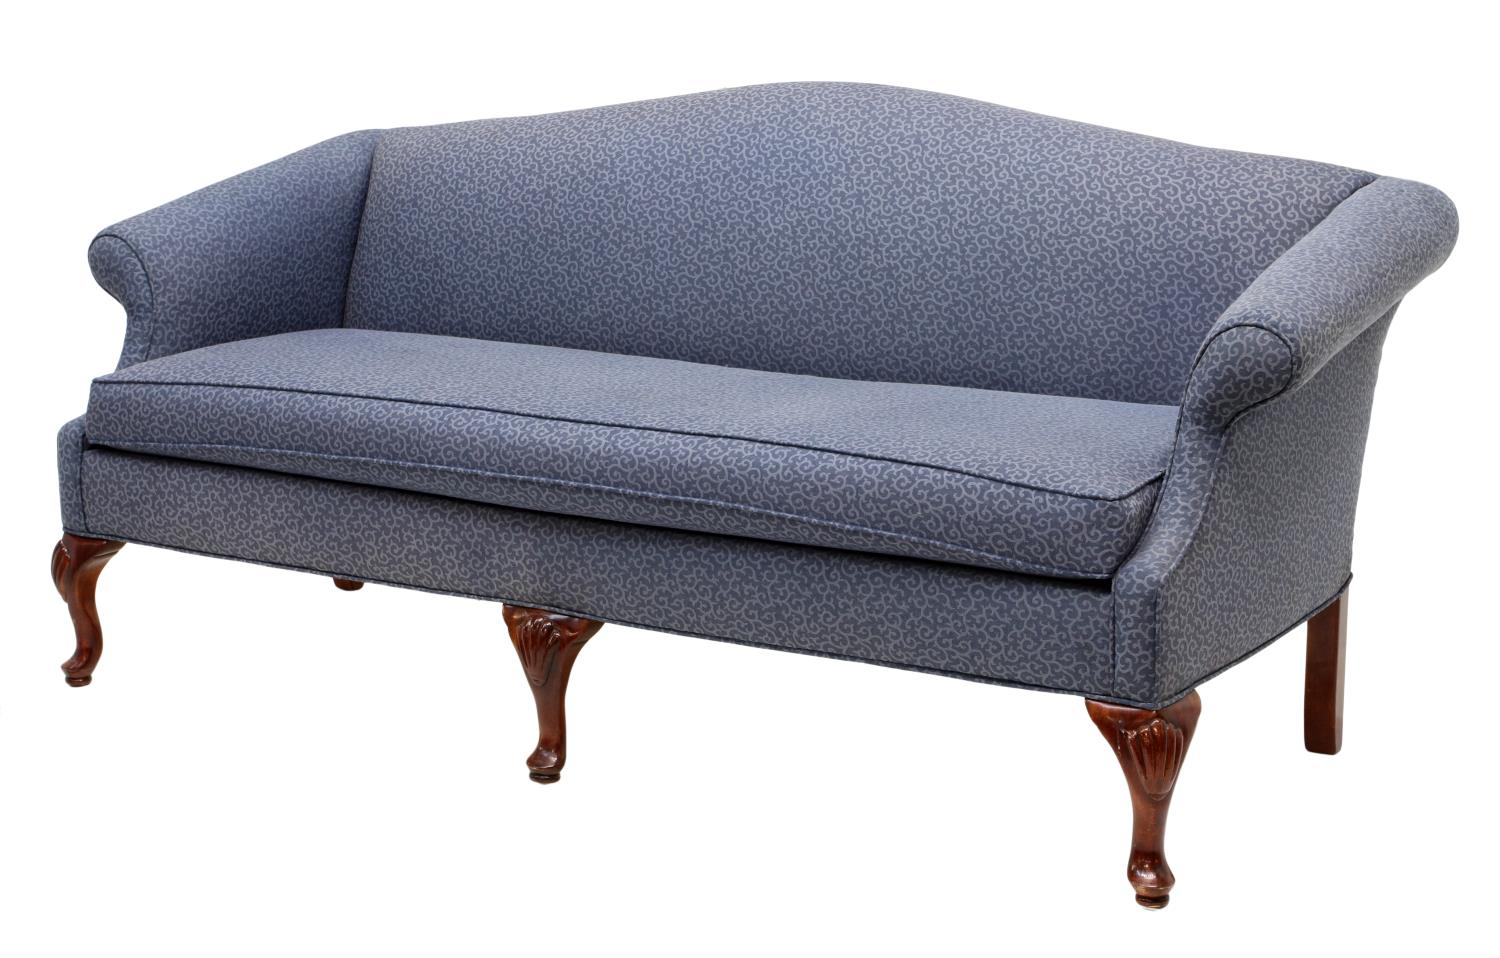 Camel Back Upholstered Sofa Spectacular Holiday 2 Day Estates Auction Austin Auction Gallery